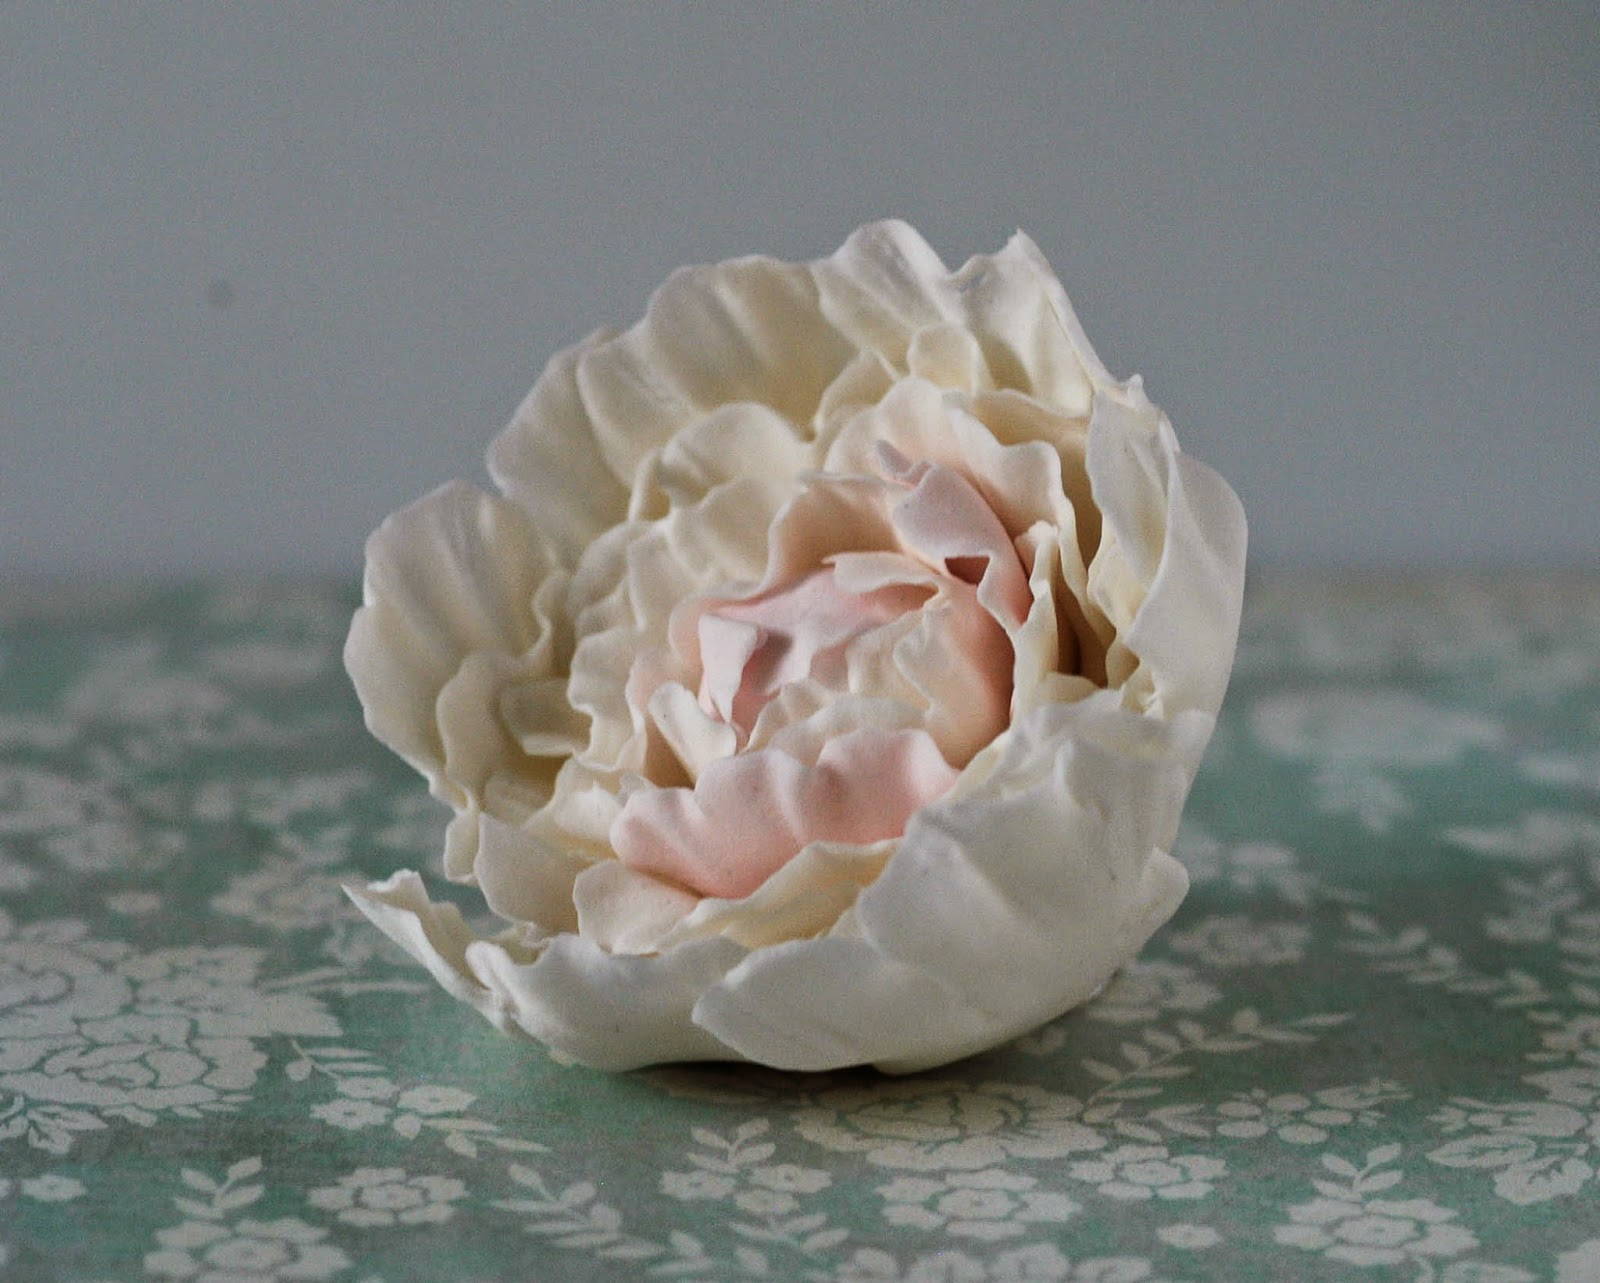 http://jule-backt.blogspot.de/2014/04/how-to-makepeony-pfingstrosen.html